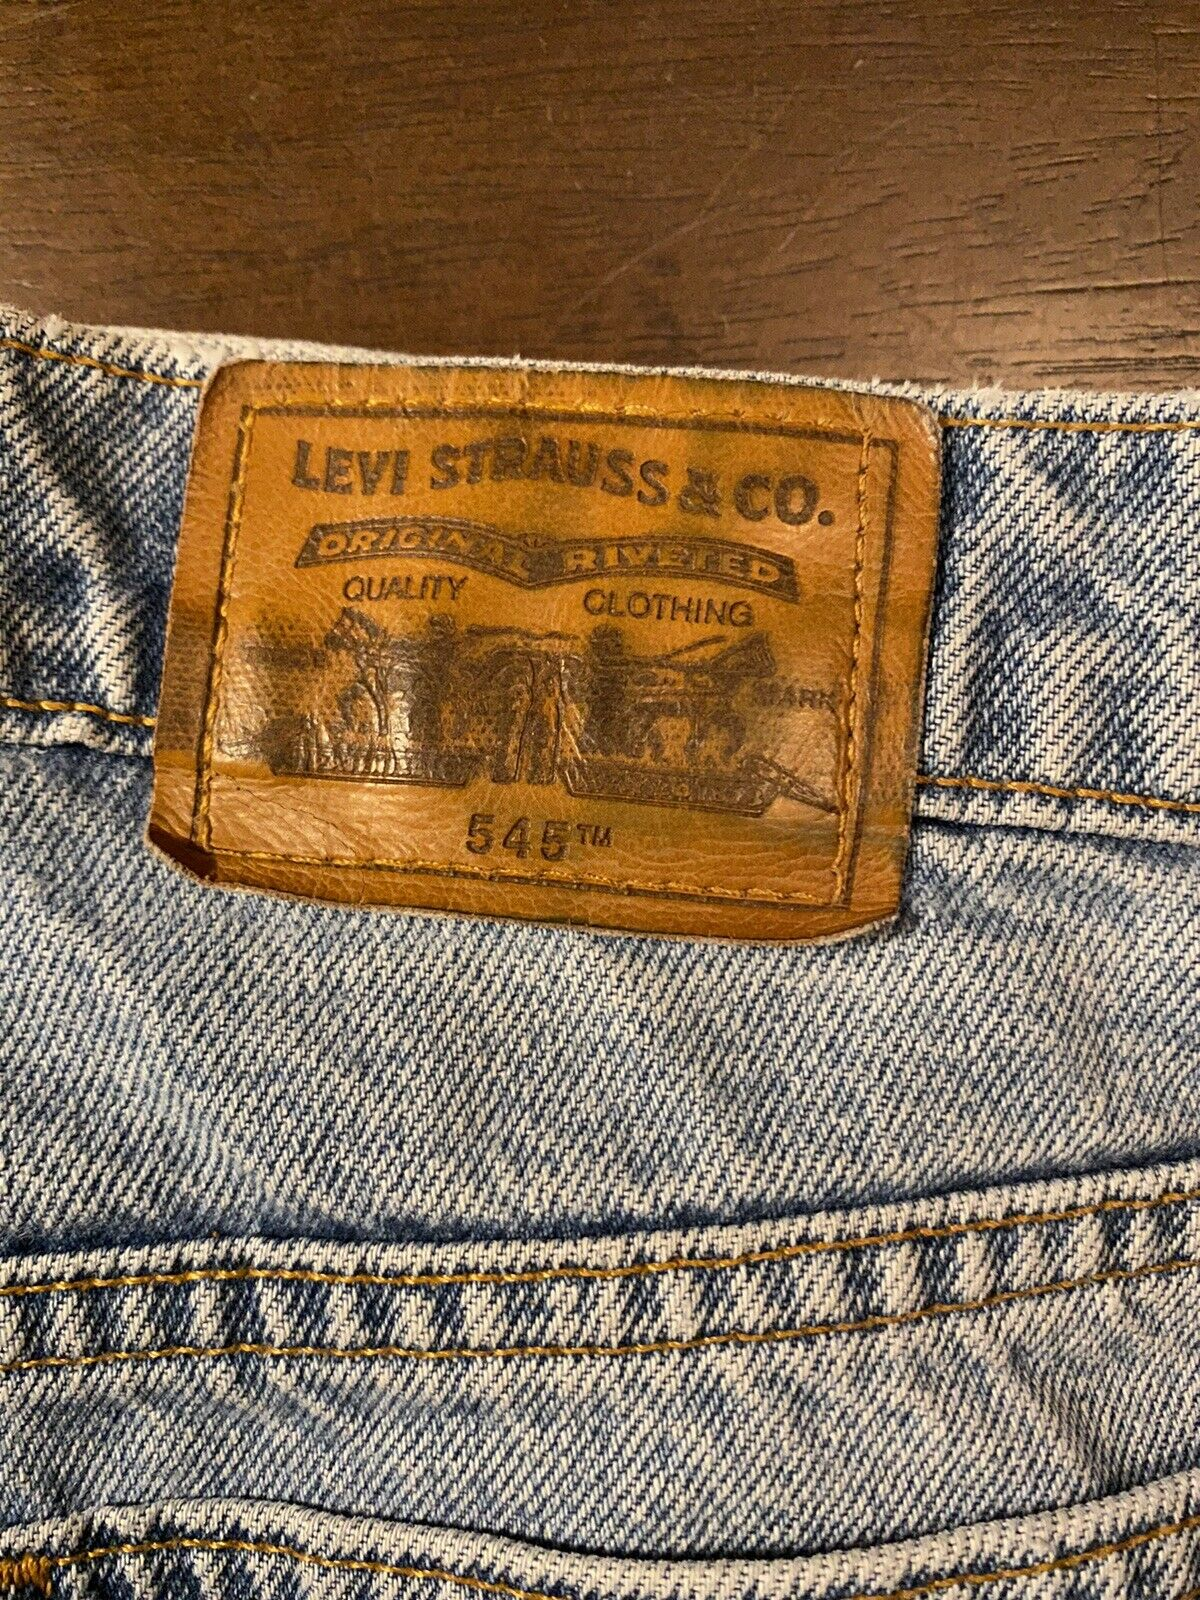 Vintage Levis (Brown Tab) Made In USA - image 3